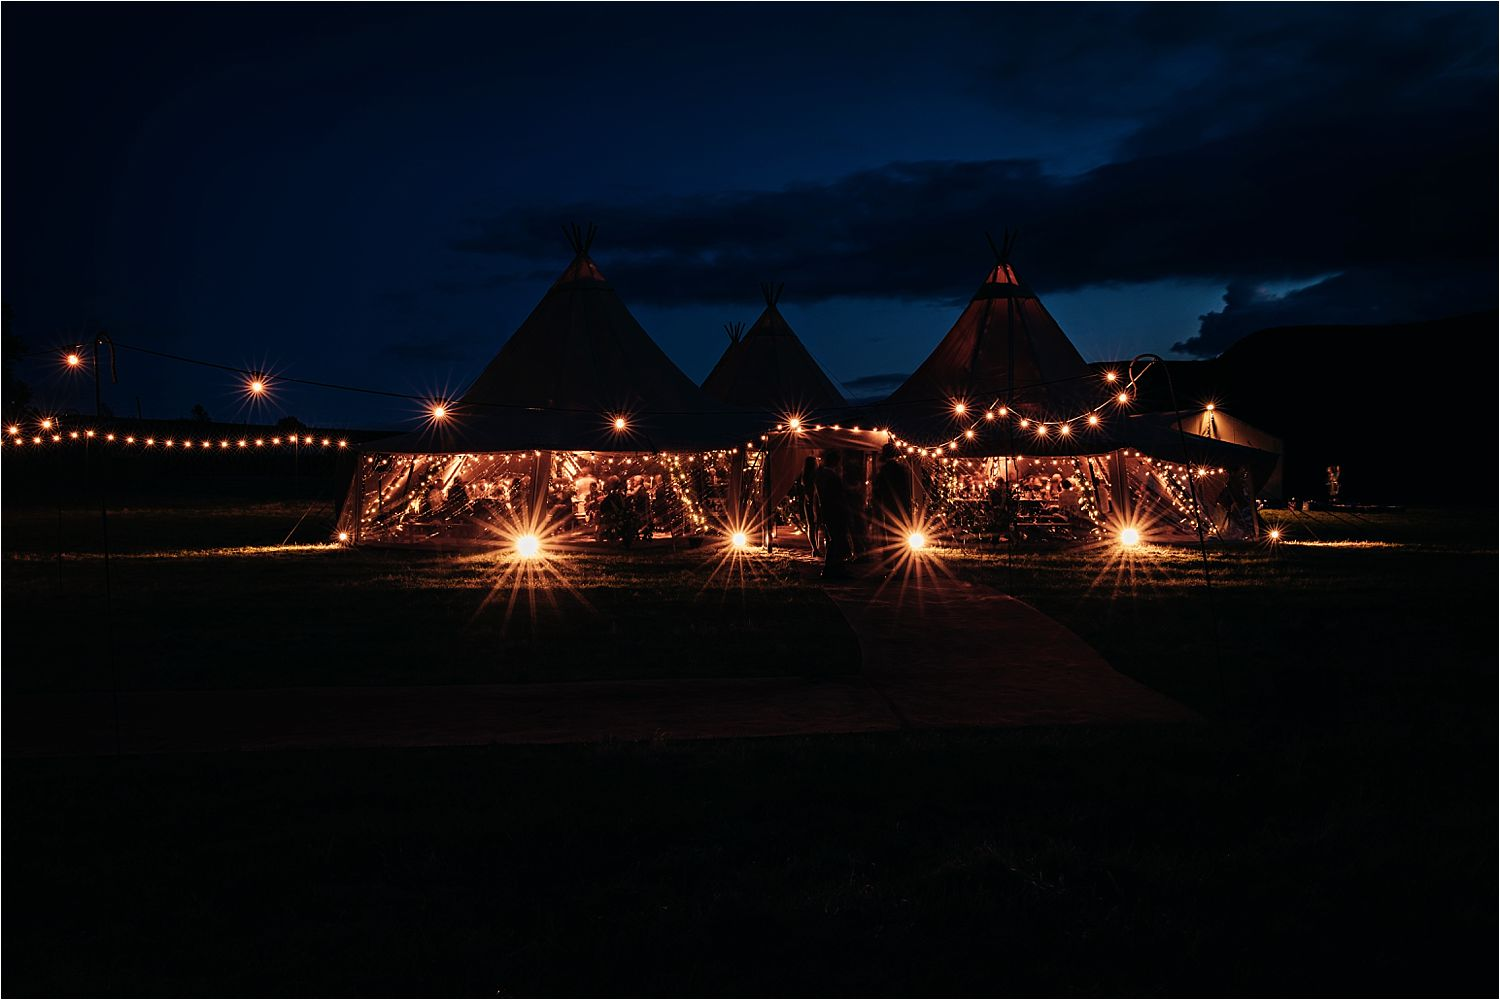 Night time exterior shot of Big Chief Tipis tipi all lit up in Manchester moorland setting